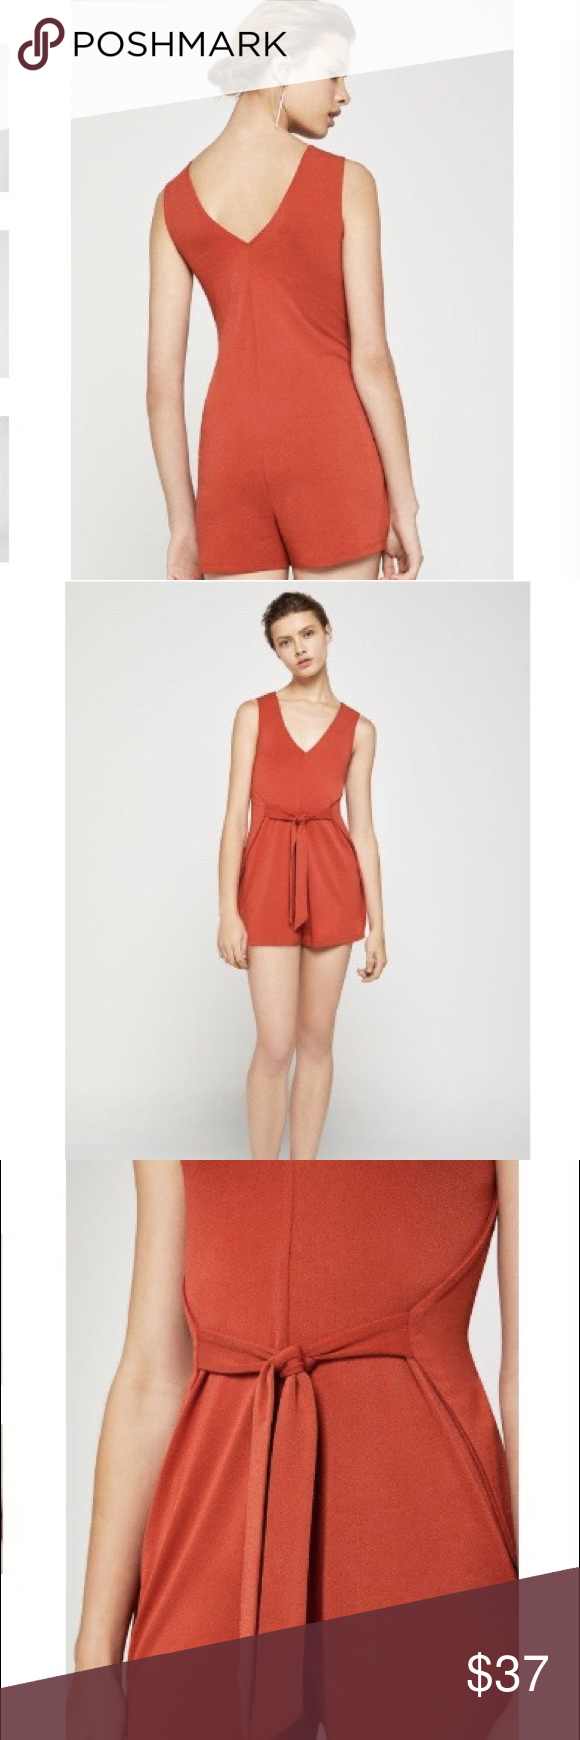 94fc89e604f NEW BCBG Generation Waist Tie Romper NEW With tags - sleeveless romper with  adjustable waist tie. BCBGeneration Pants Jumpsuits   Rompers